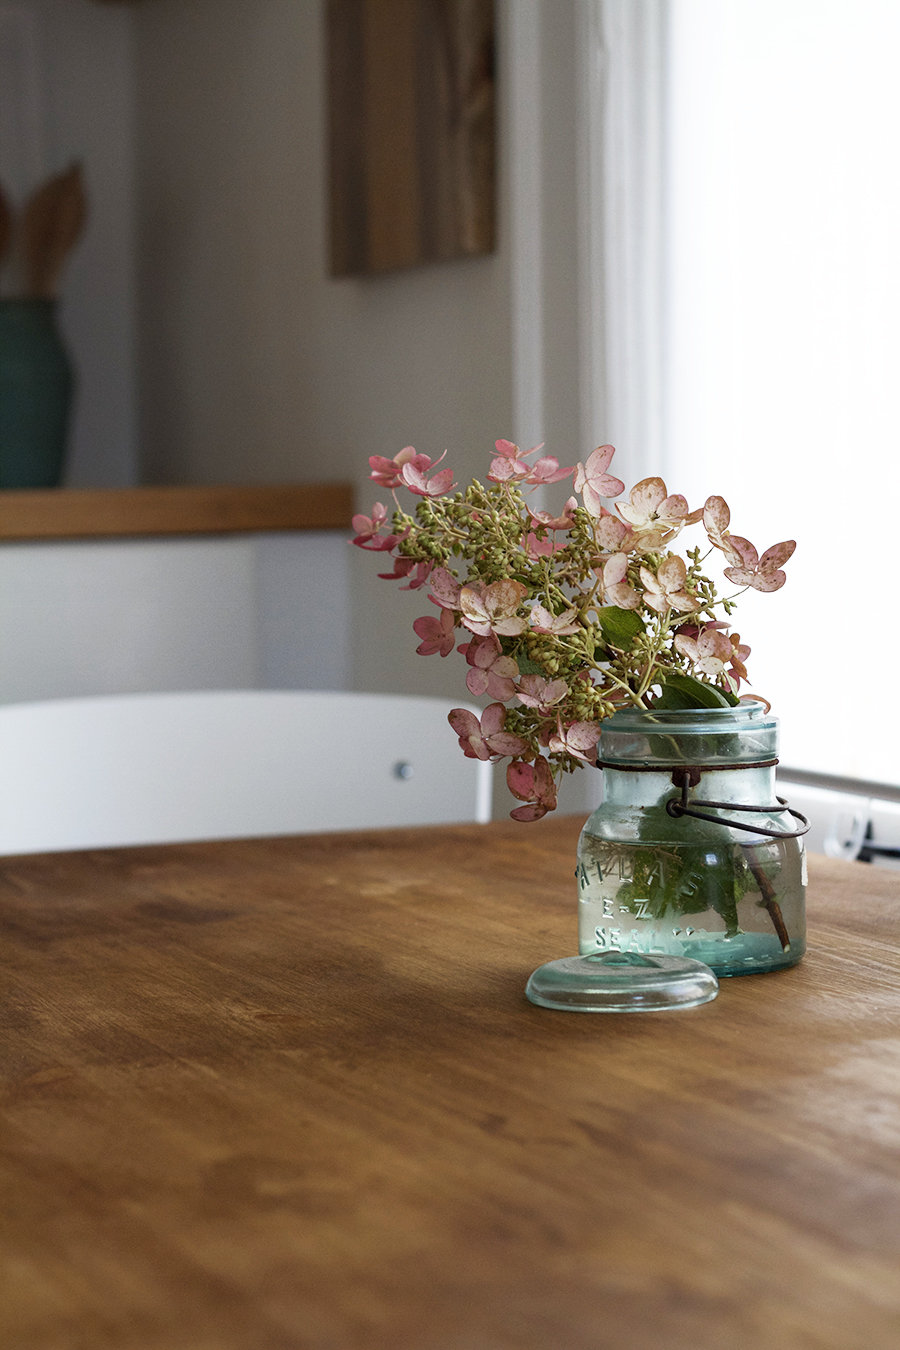 Table and Bench Reveal using Amy Howard at Home paints and waxes